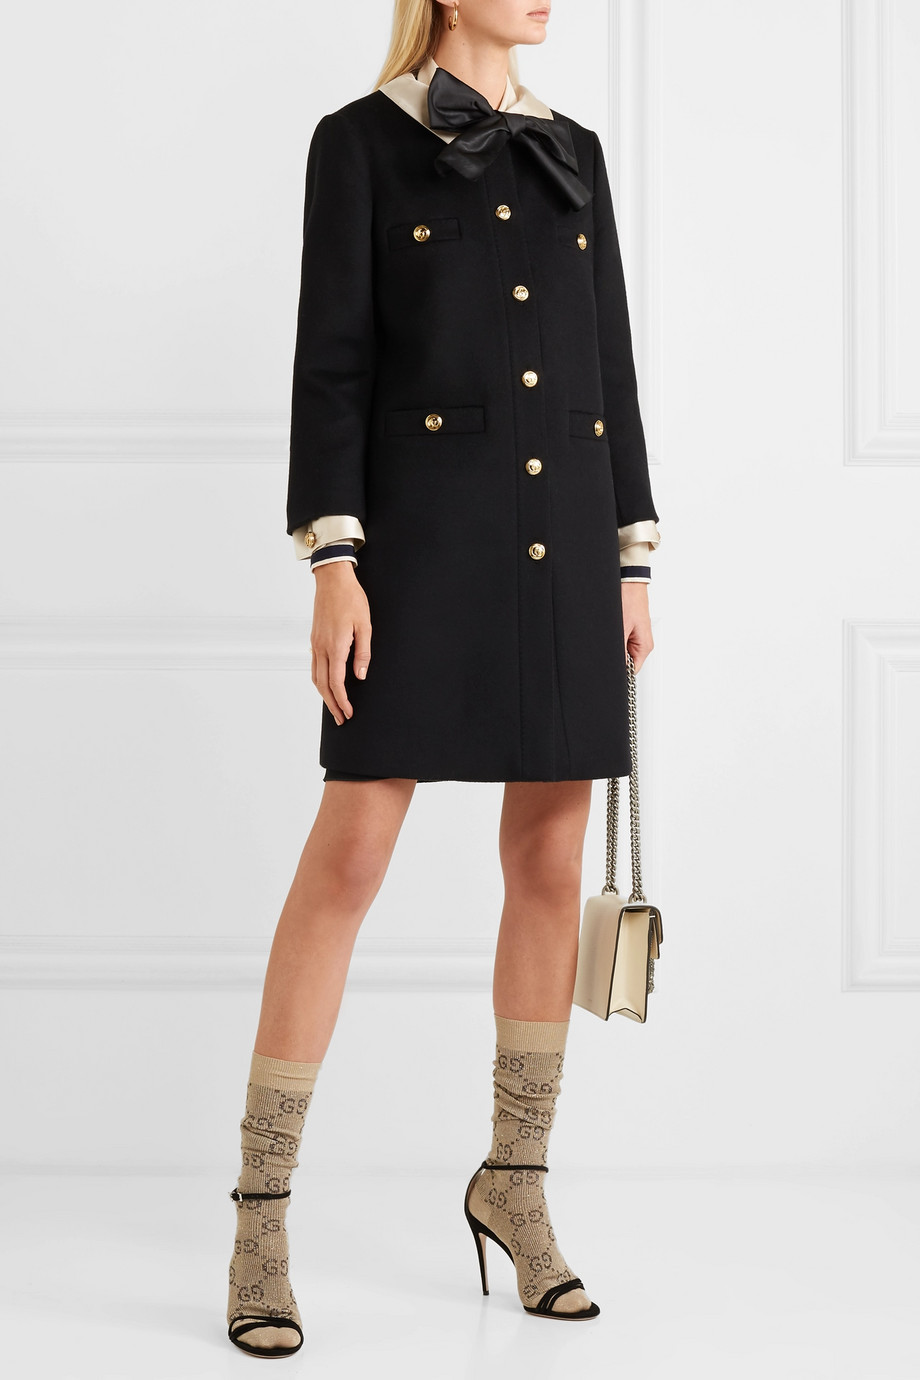 Gucci Silk satin-trimmed wool-felt coat